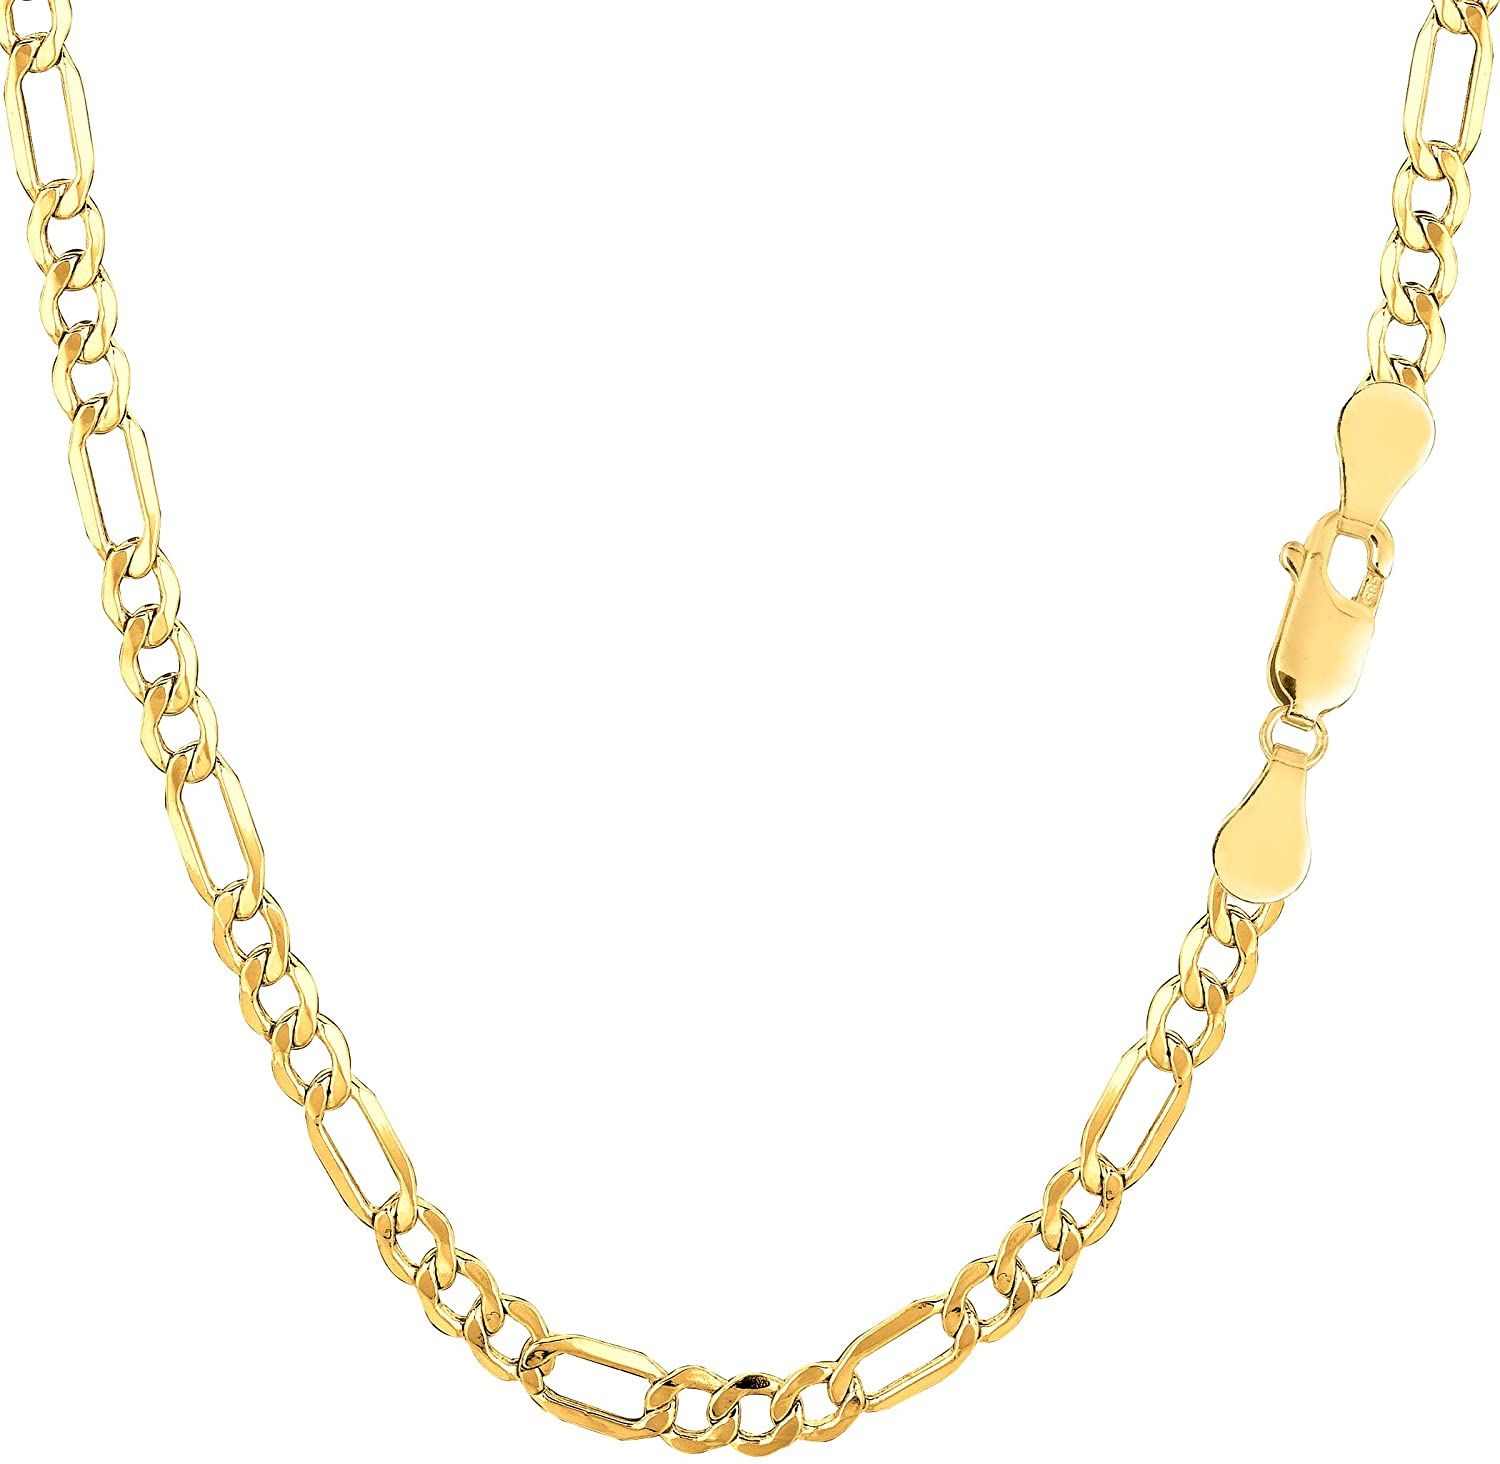 10k Yellow Gold Hollow Figaro Chain Necklace, 3.5mm